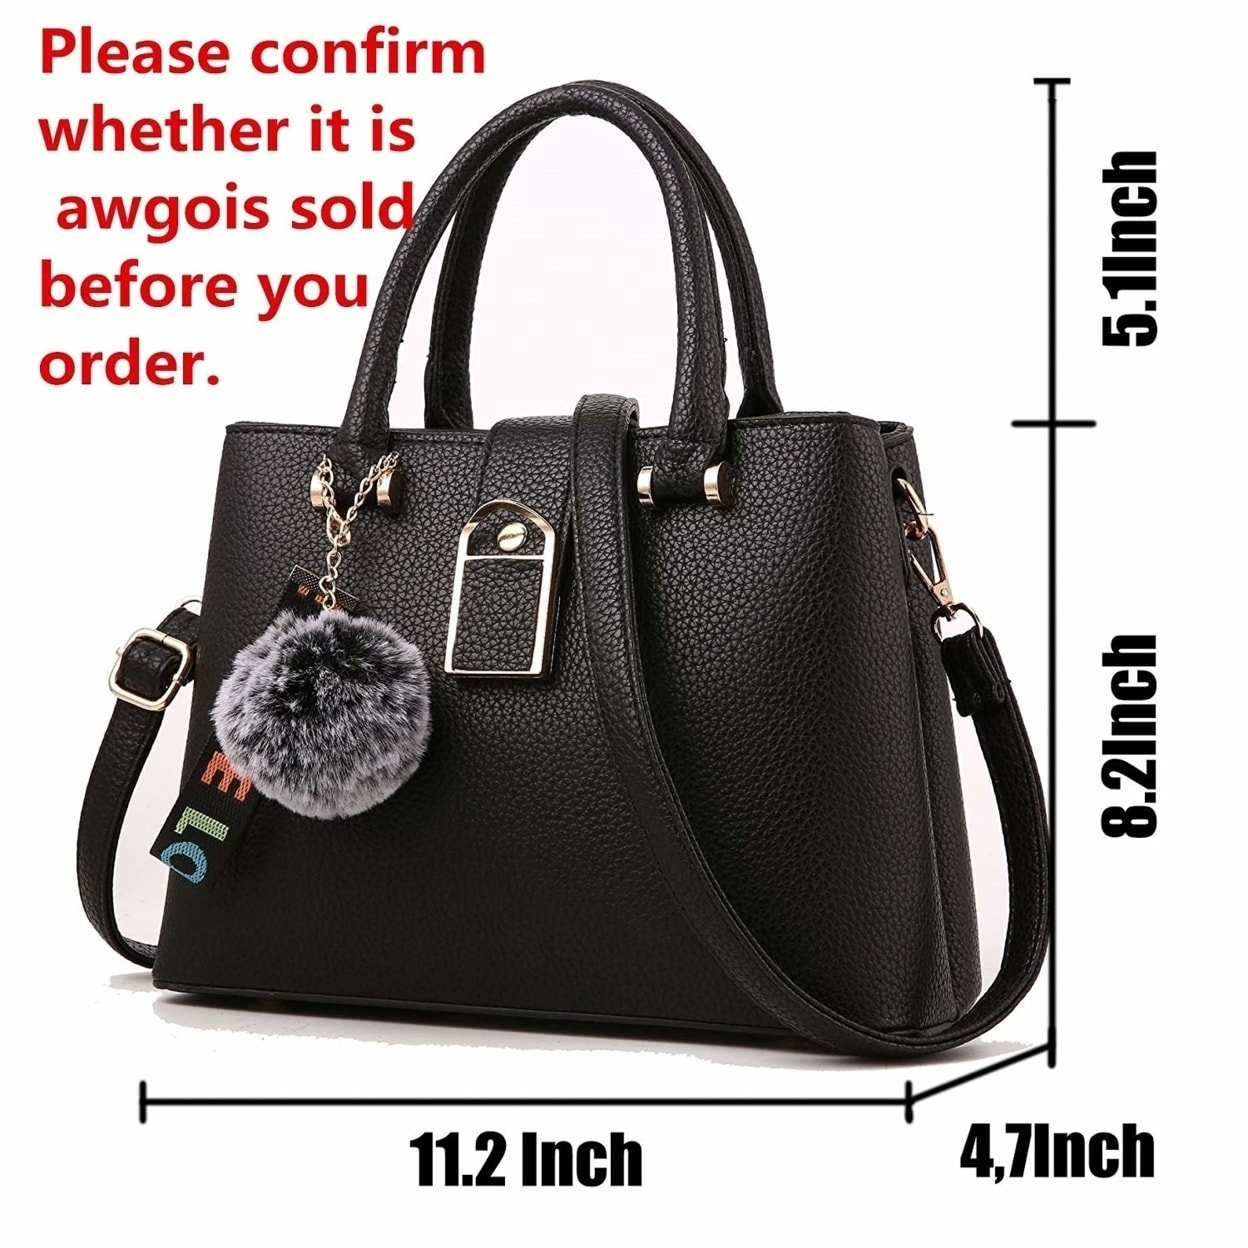 bf2727abdbbe6 Shop Purses and Handbags for Women Designer Shoulder Bags Ladies Tote Bags  Top Handle Satchel Messenger Bags - Free Shipping Today - Overstock -  23499274